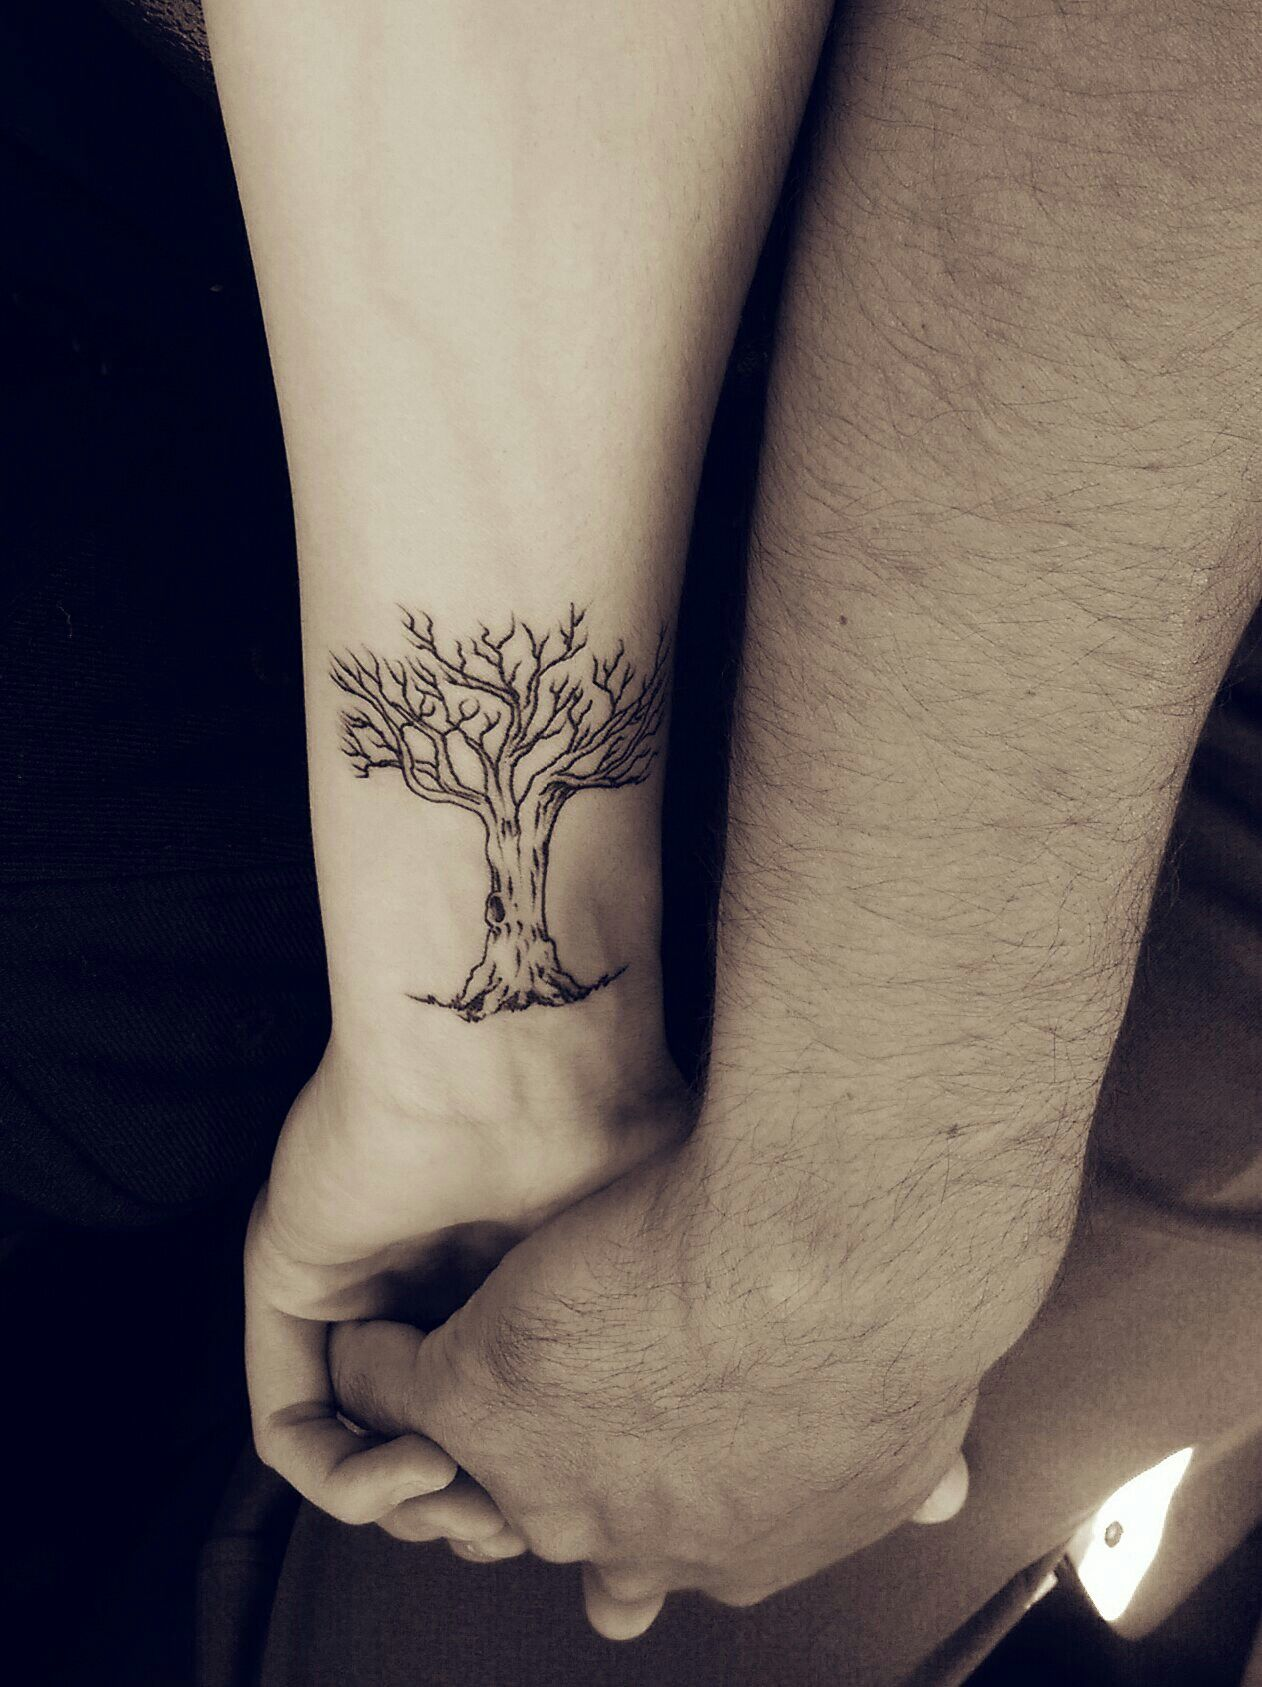 Oak Tree With Roots Tattoo: Oak Tree Tattoo...from Little Acorns Great Oak Trees Grow